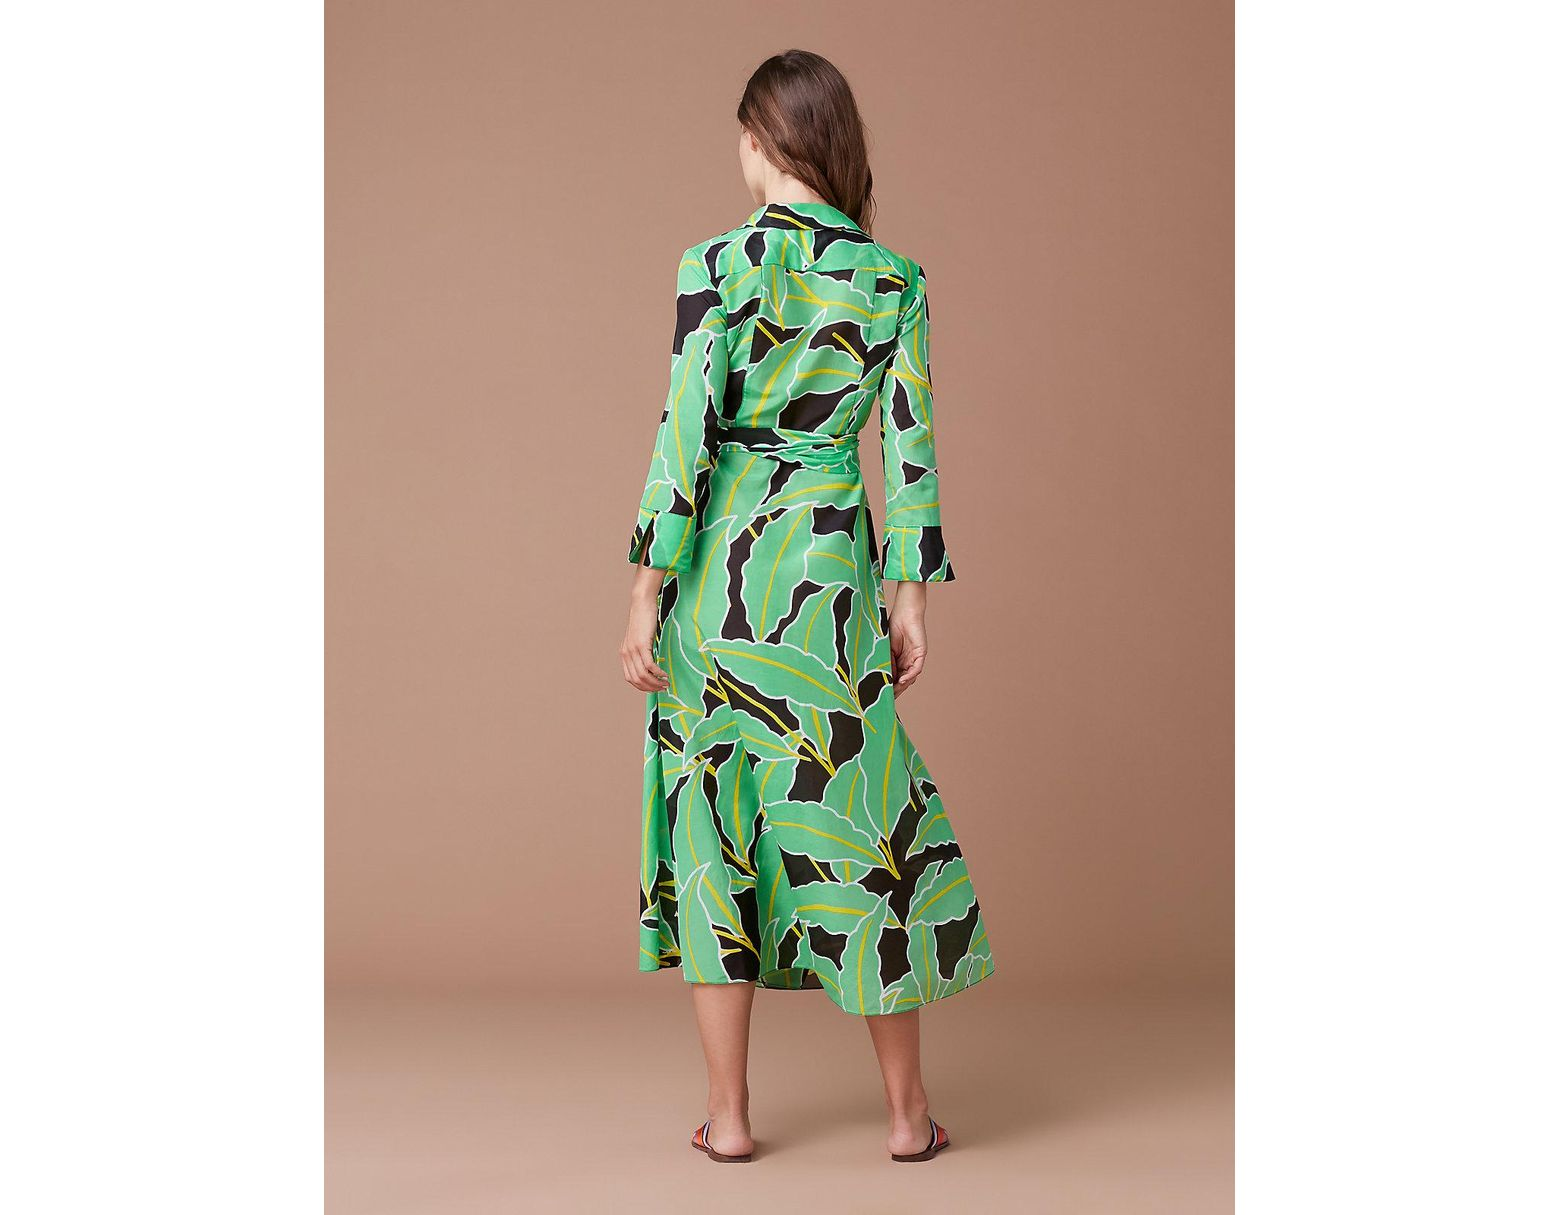 ab4e721a5c Diane von Furstenberg Collared Wrap Dress Cover-up in Green - Save 40% -  Lyst